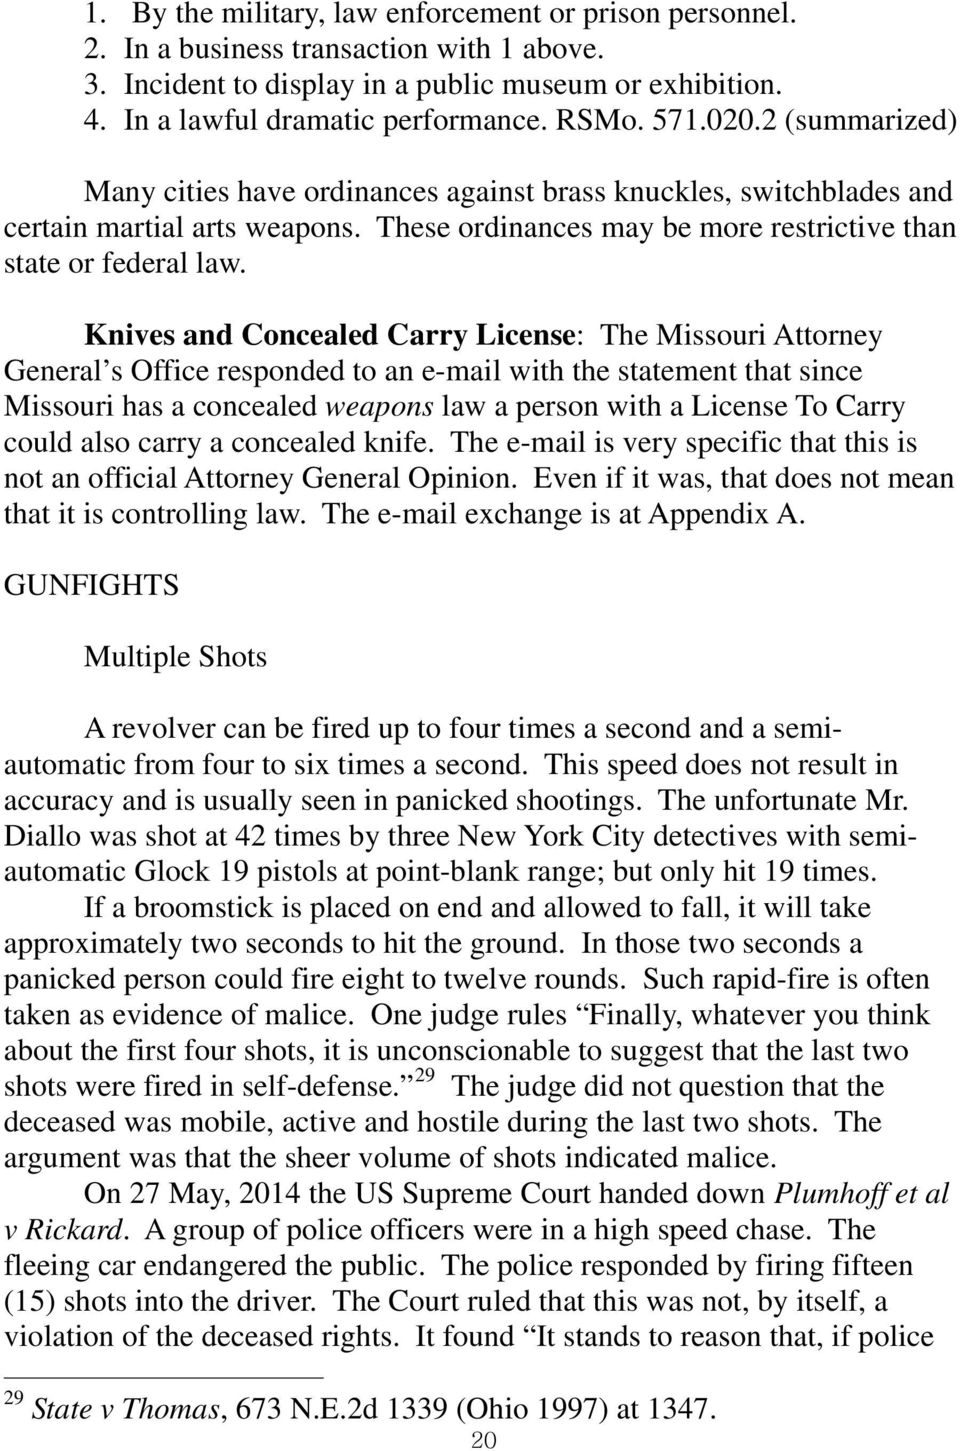 Knives and Concealed Carry License: The Missouri Attorney General s Office responded to an e-mail with the statement that since Missouri has a concealed weapons law a person with a License To Carry